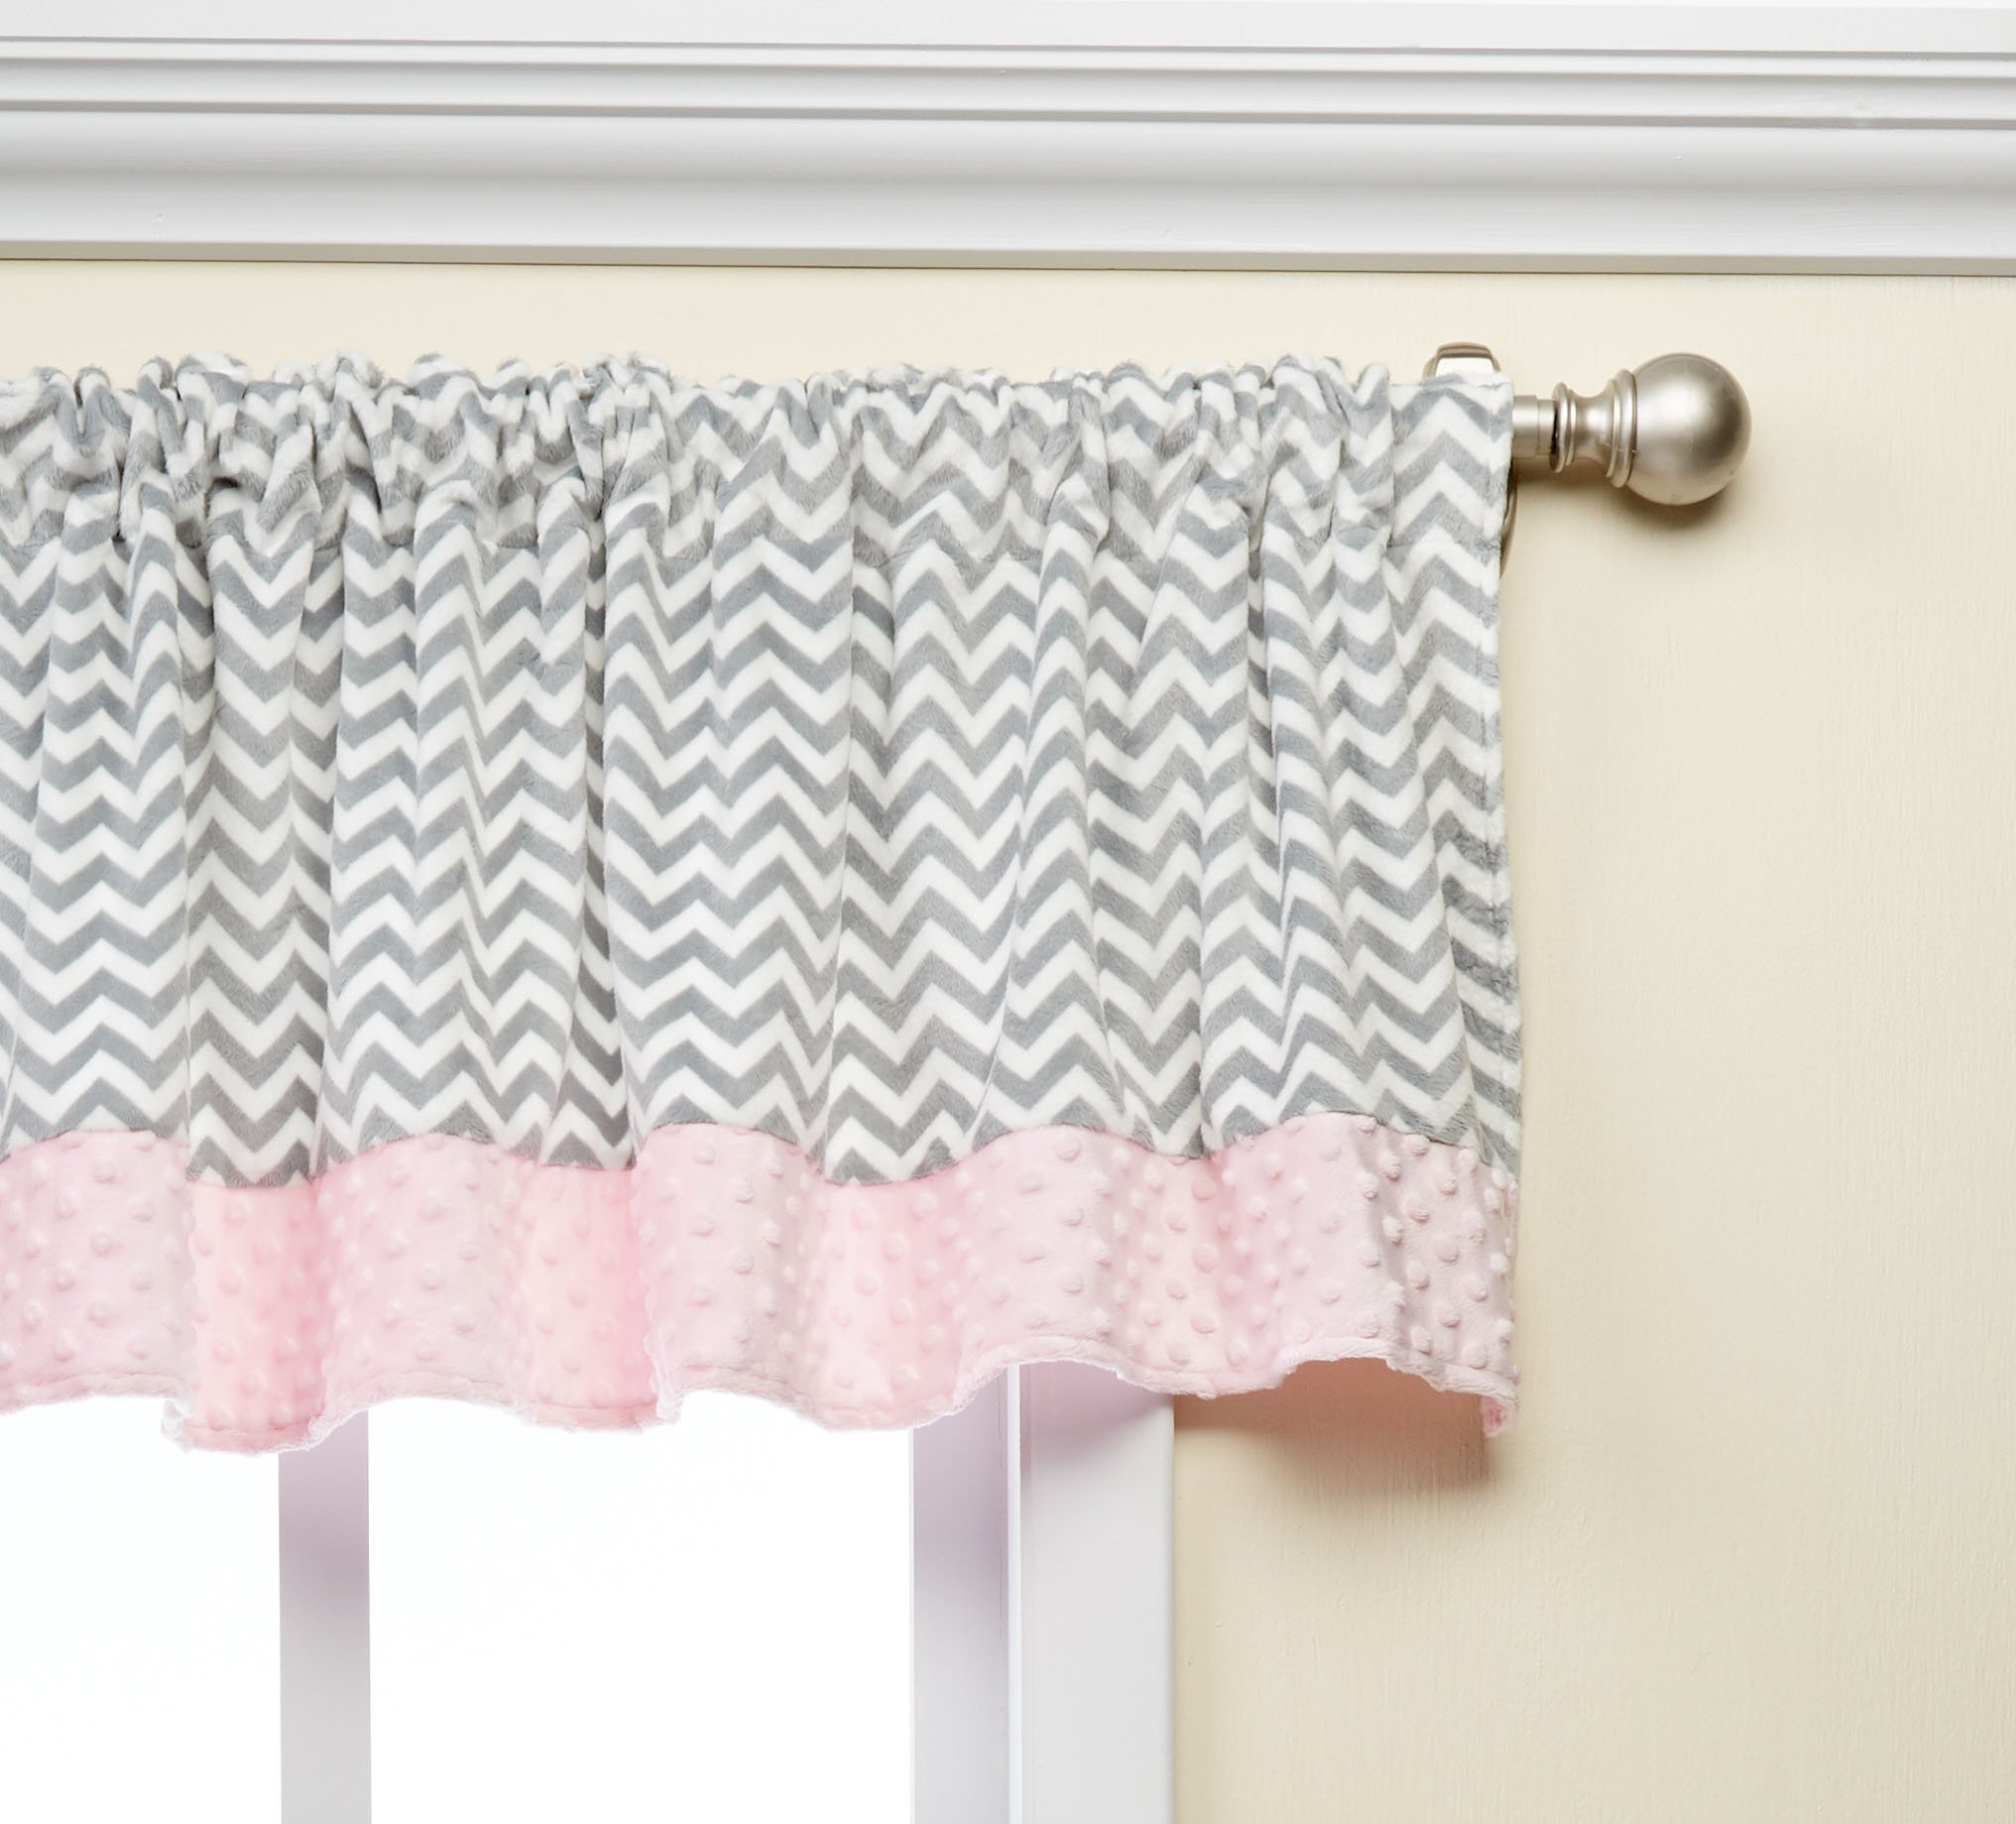 Baby Doll Bedding Minky Chevron Window Valance, Pink by BabyDoll Bedding